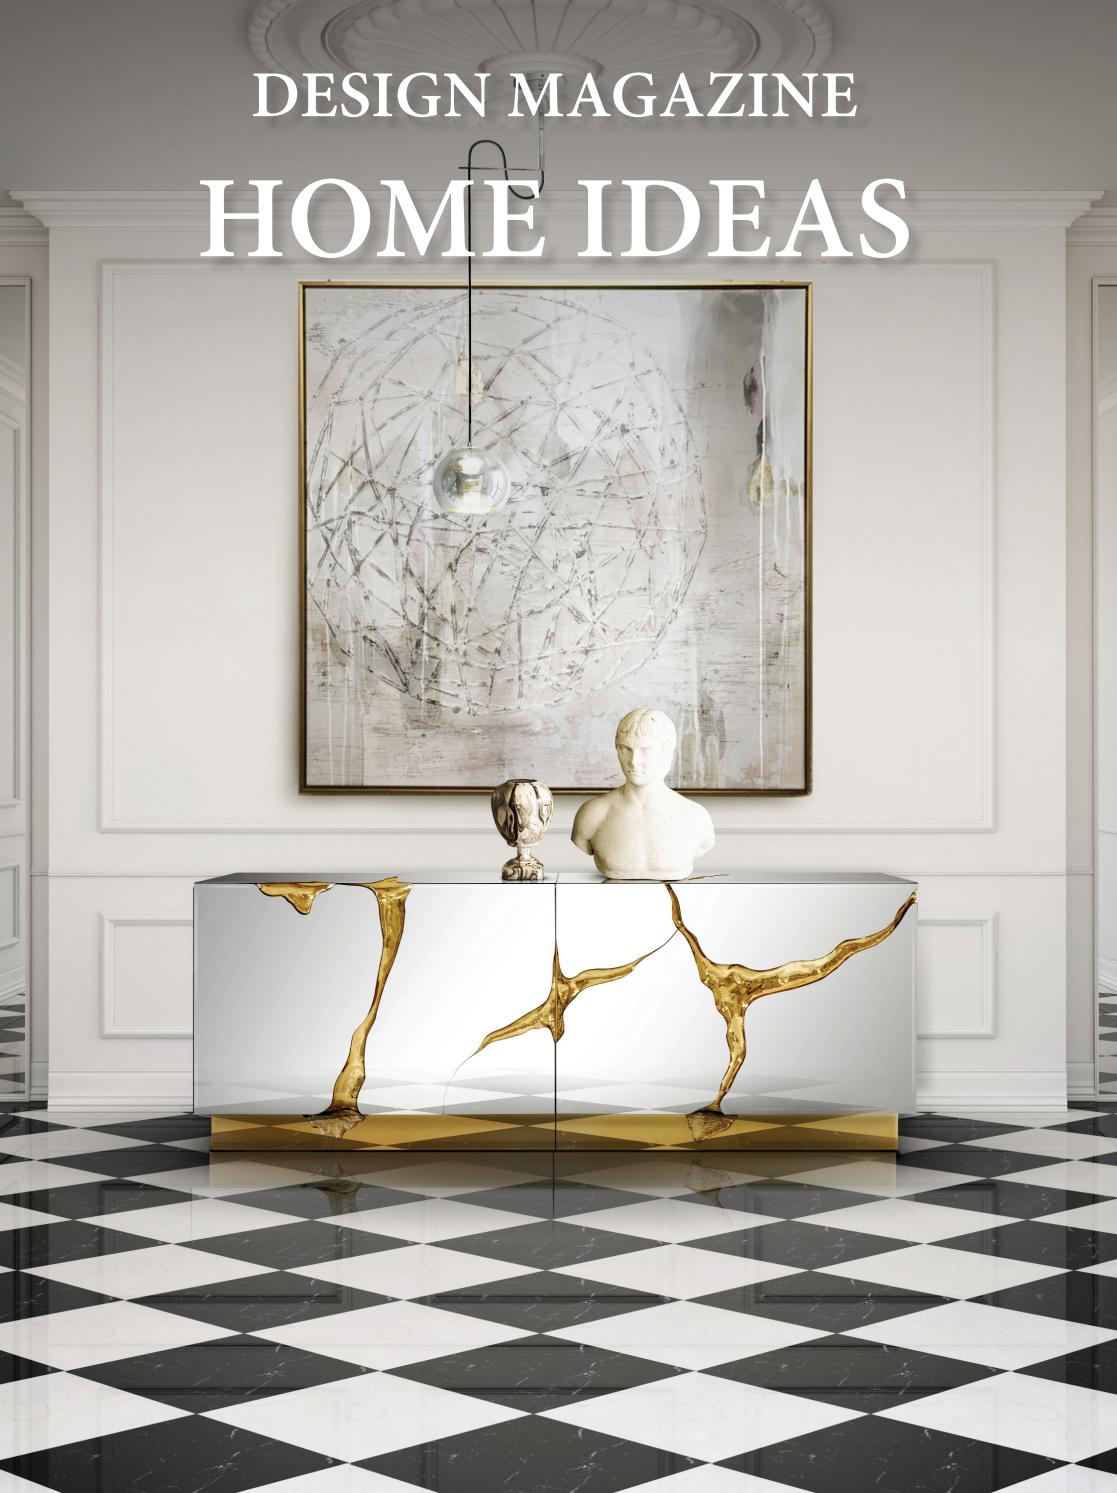 Design magazine home ideas by covet house issuu Home decor magazines